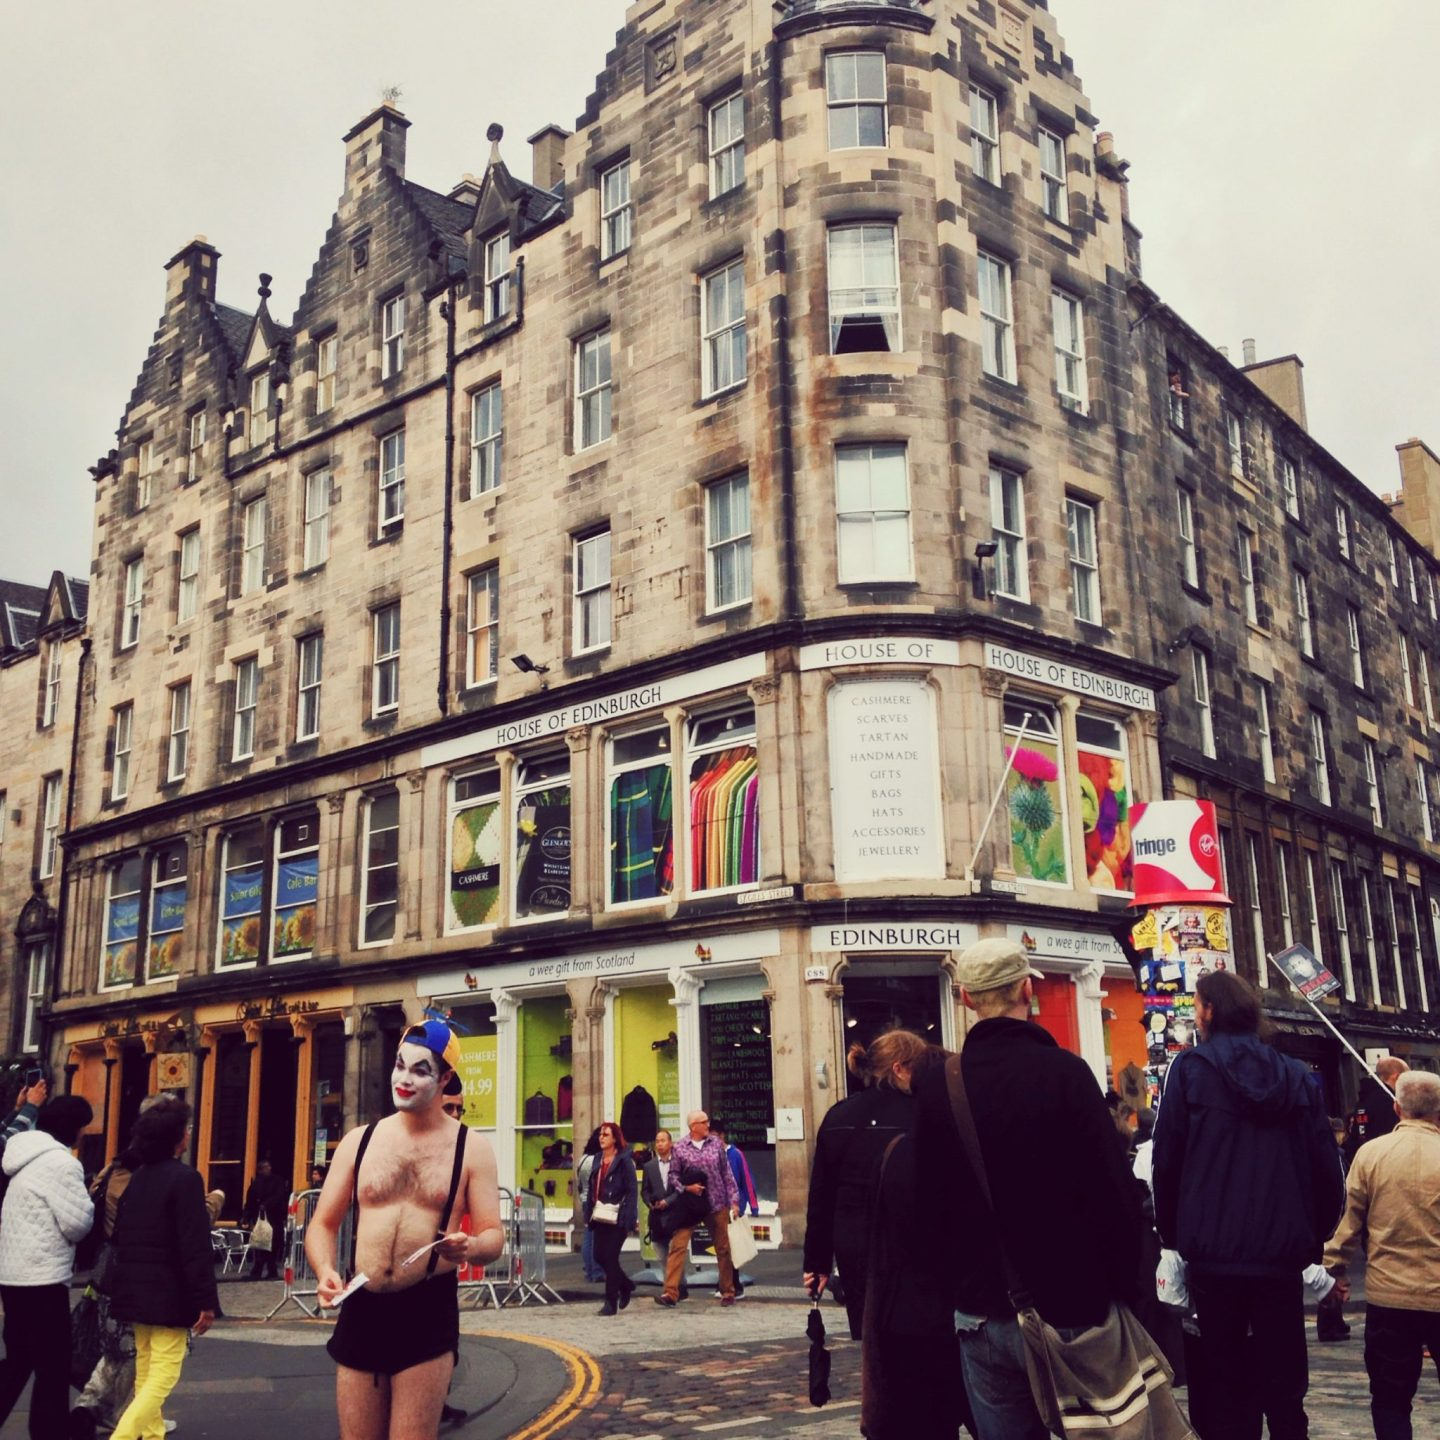 Edinburgh Fringe – What I Saw